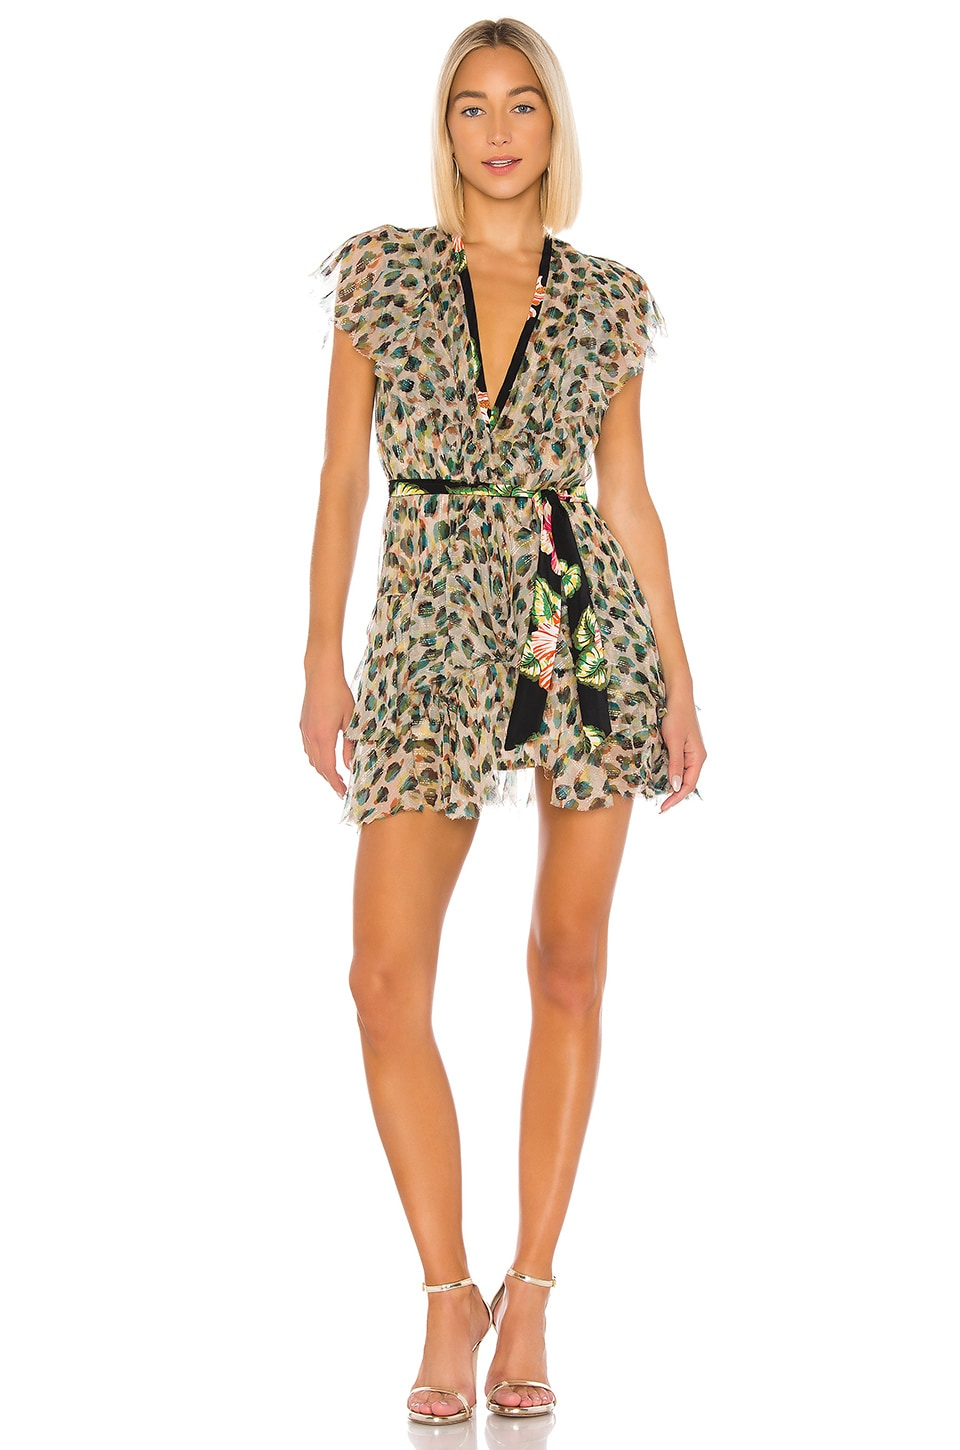 Le Superbe Flirty Leopard Dress in Van Gogh Leopard